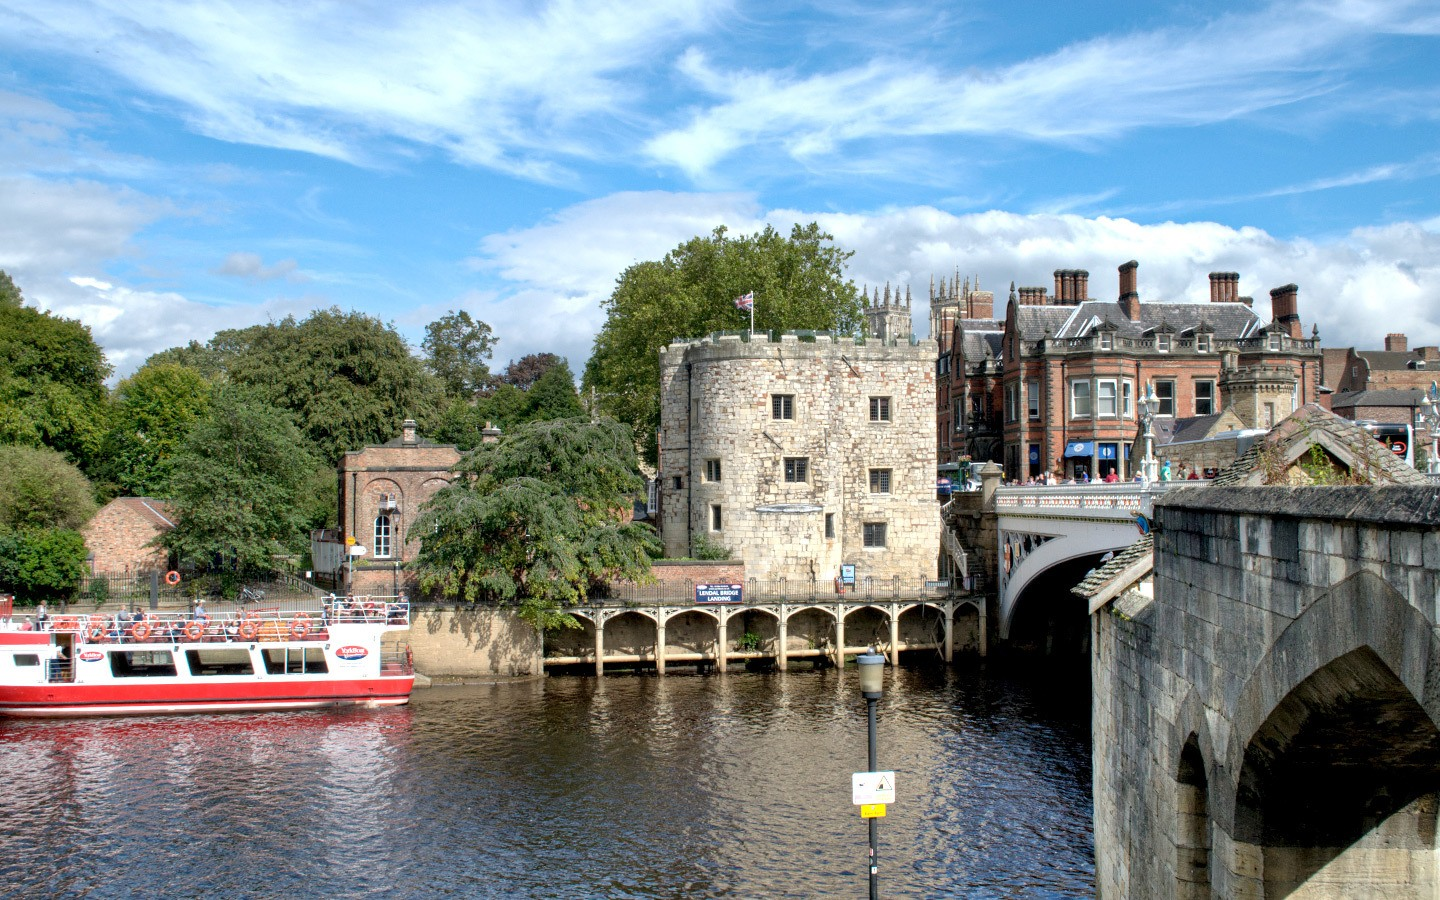 Boat trips on the River Ouse in York